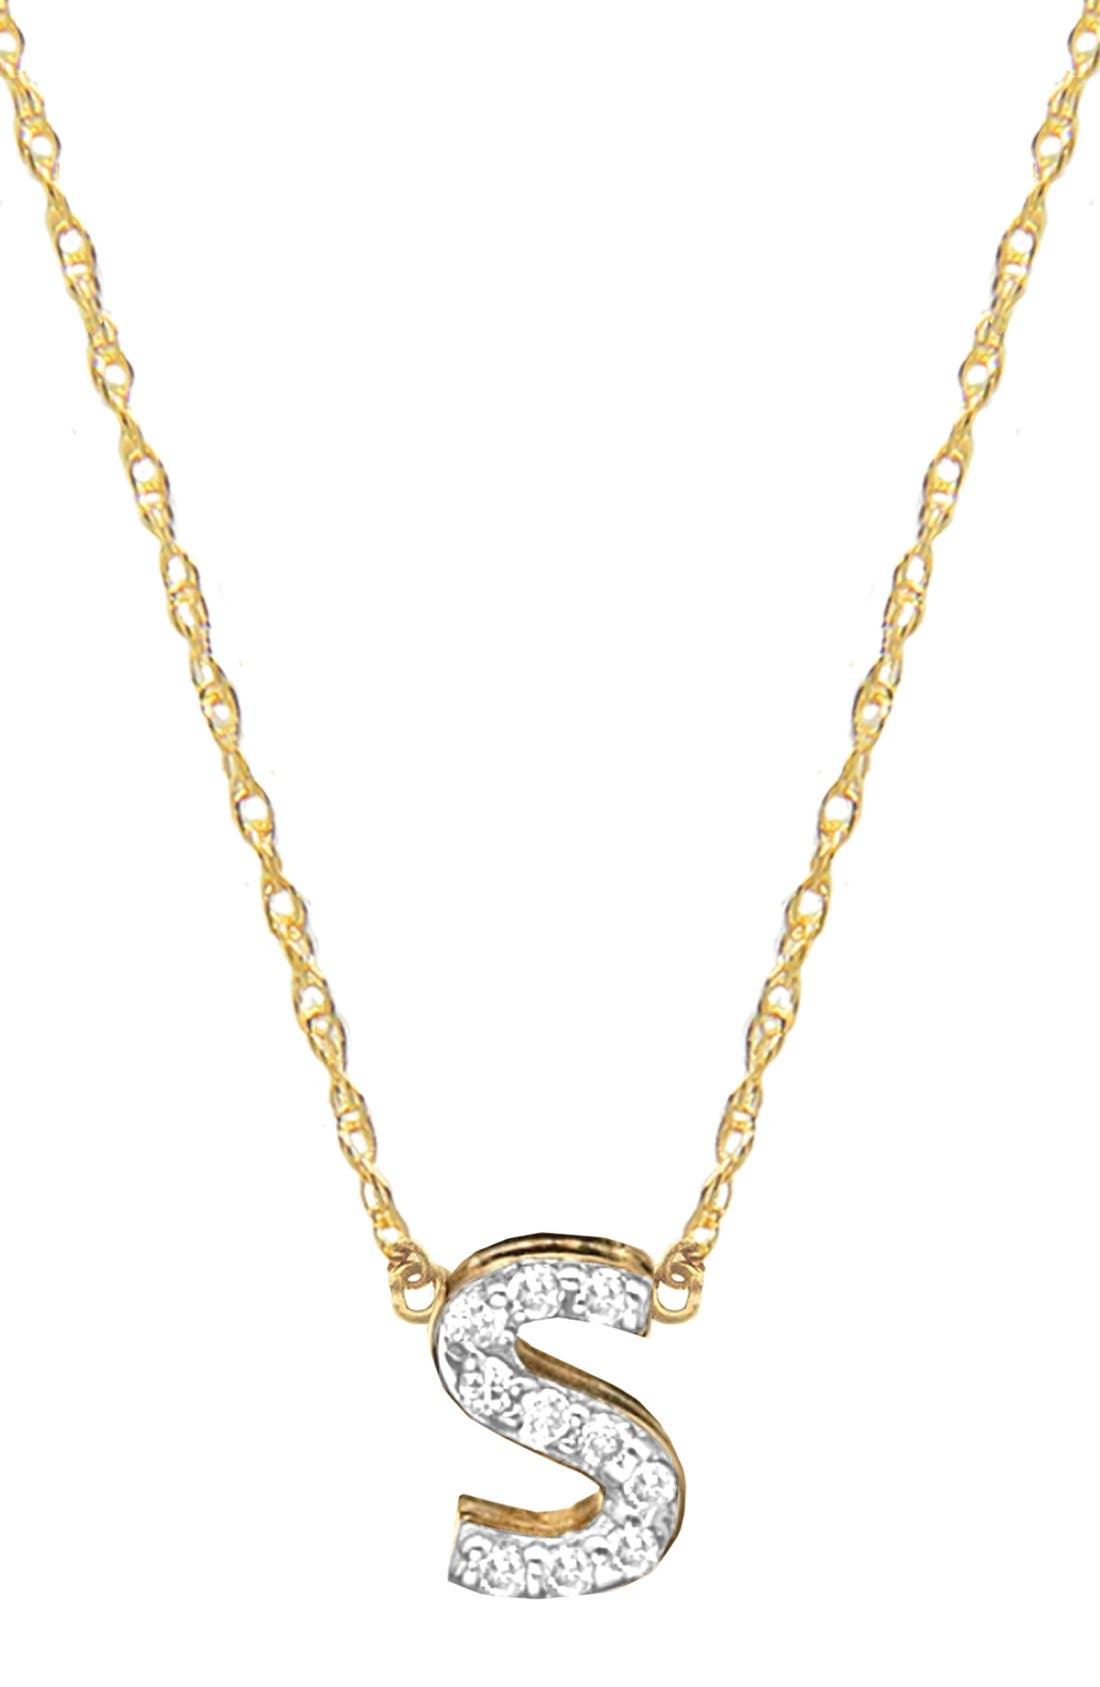 JANE BASCH DESIGNS Jane Basch Diamond Initial Pendant Necklace